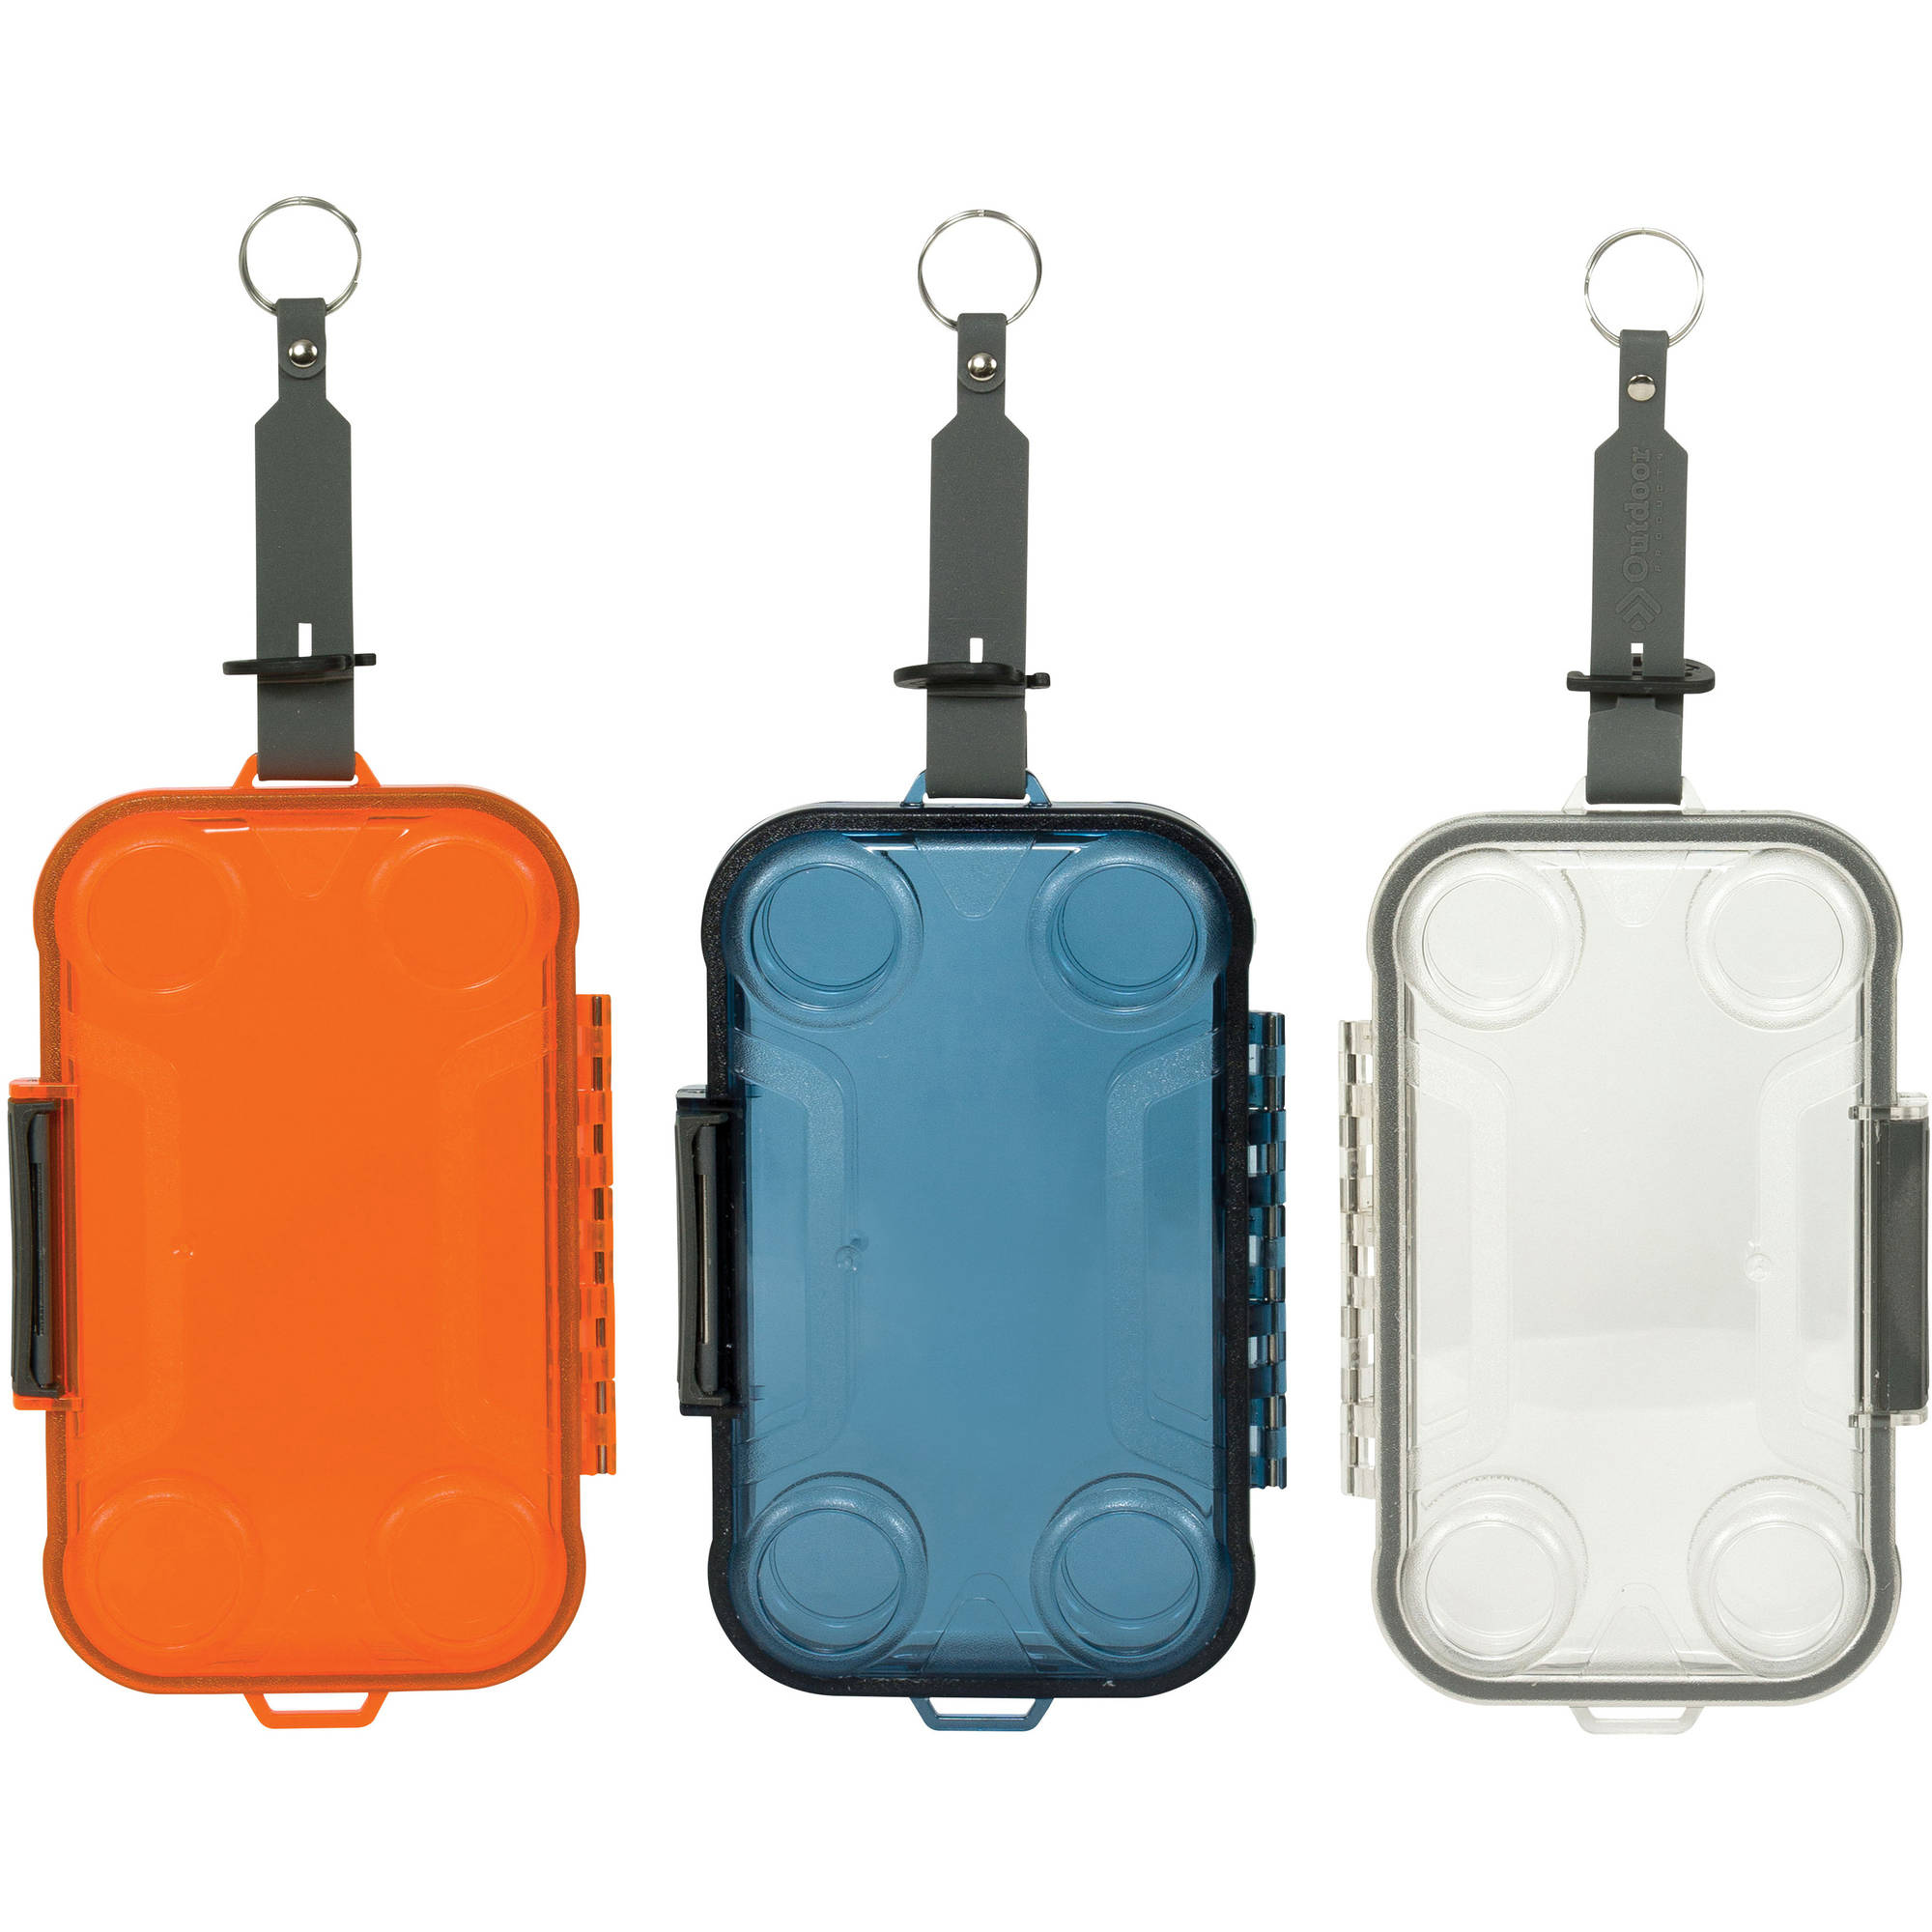 Outdoor Products Smartphone Case, Multiple Colors